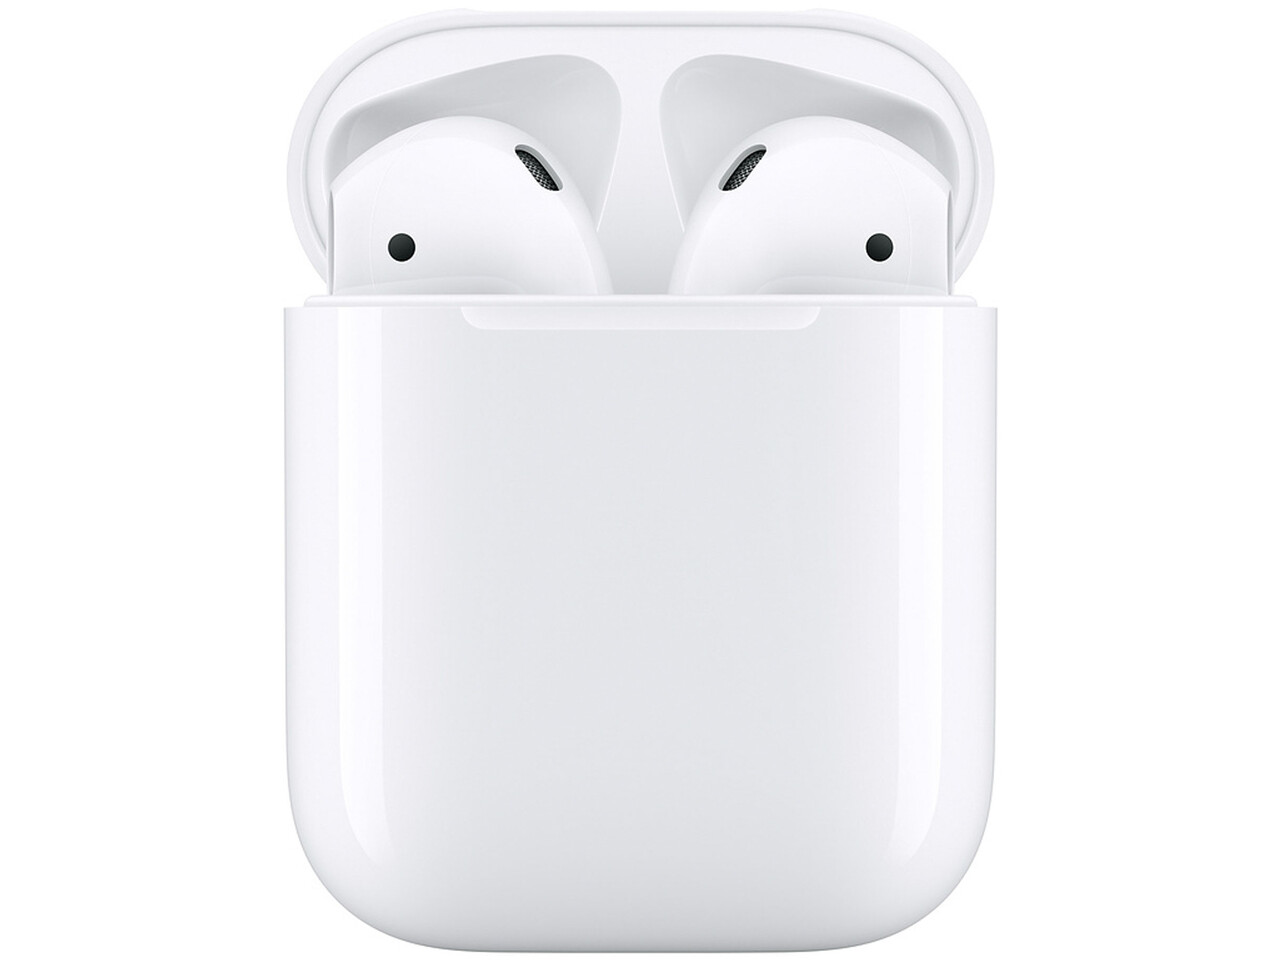 airpods 1st generation